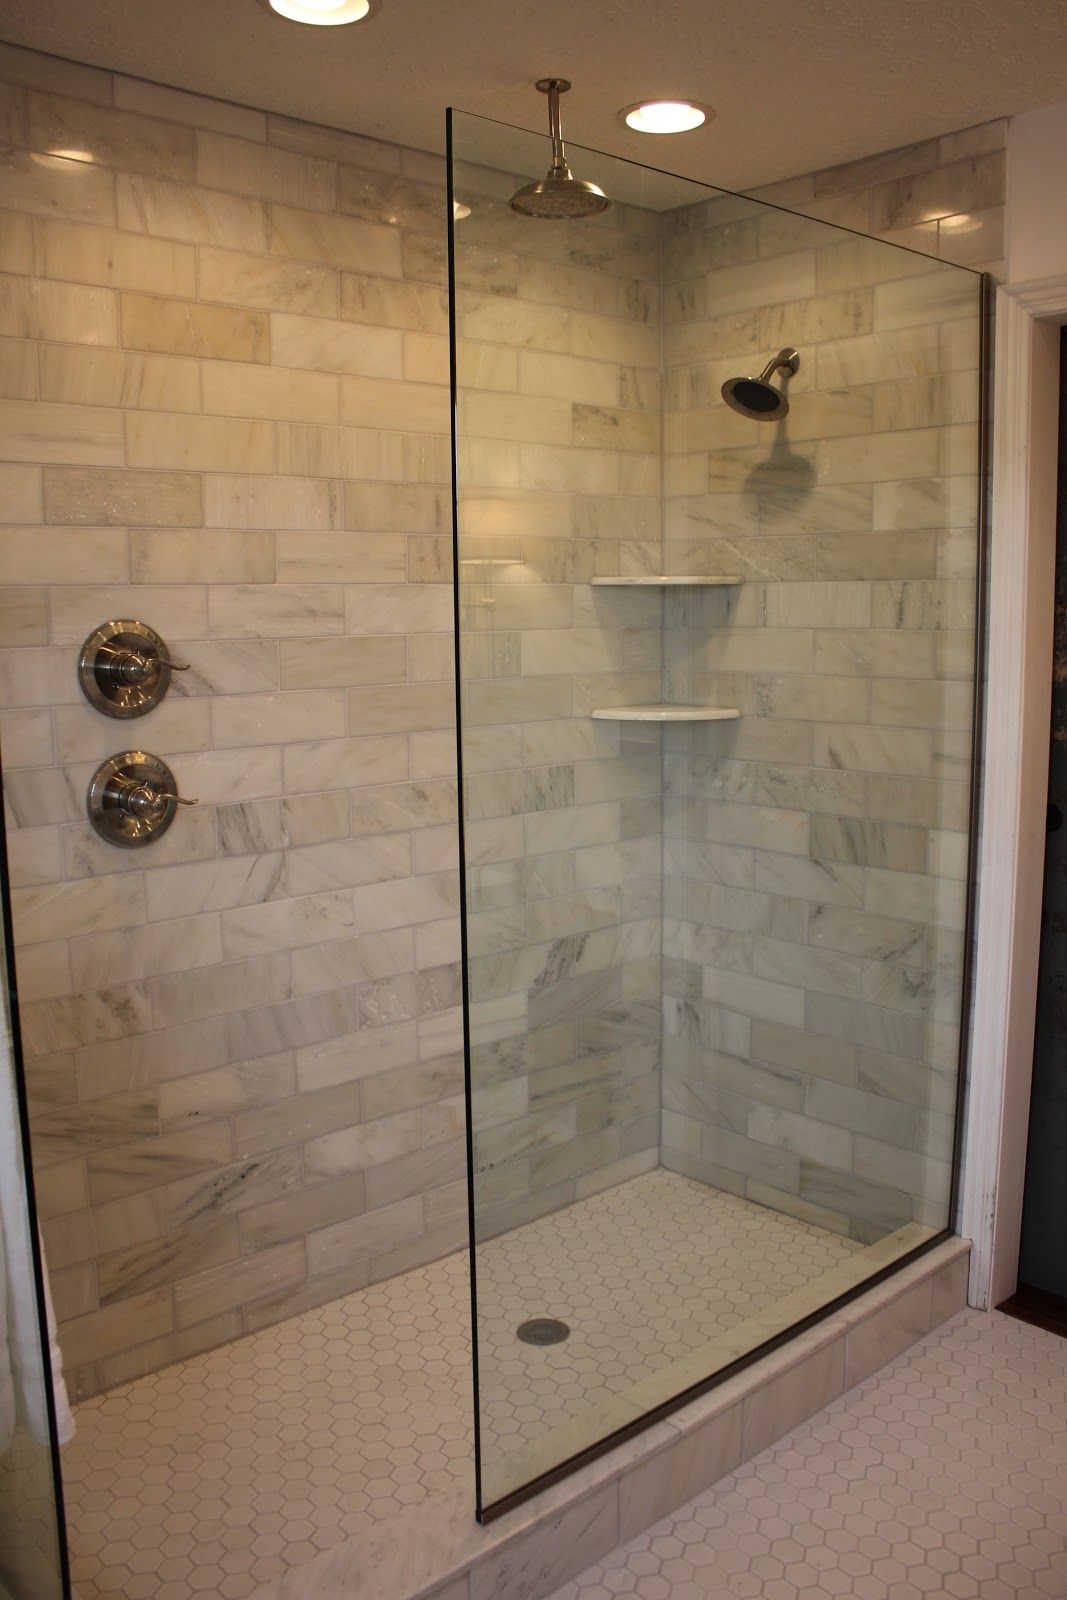 Cool Glass Doorless Shower Design Decor With Brick Soft Wall Color Style Decoration Furniture